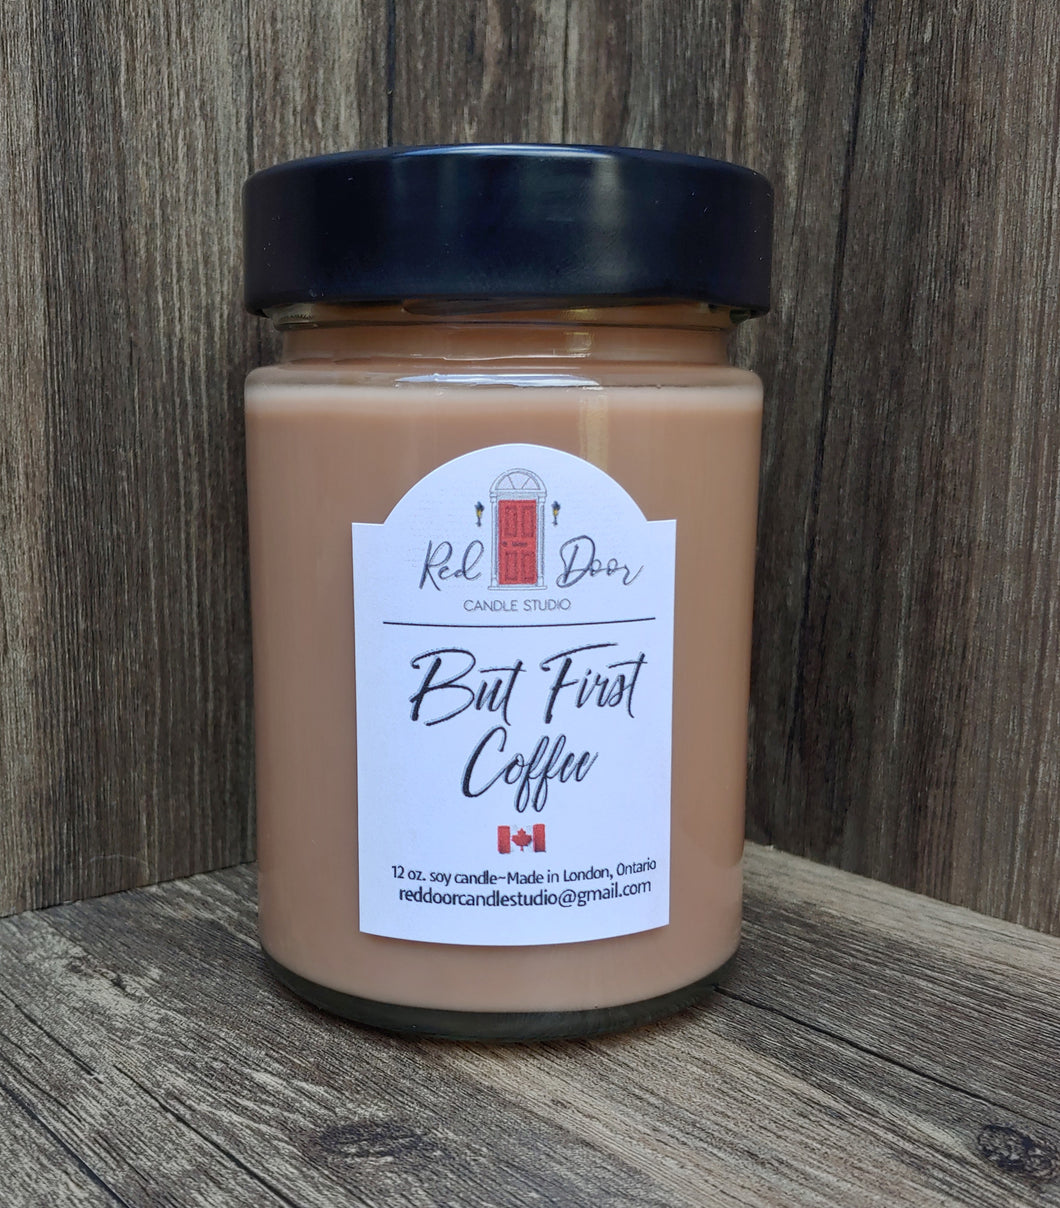 But First Coffee Soy Wax Candle-12 oz. Large